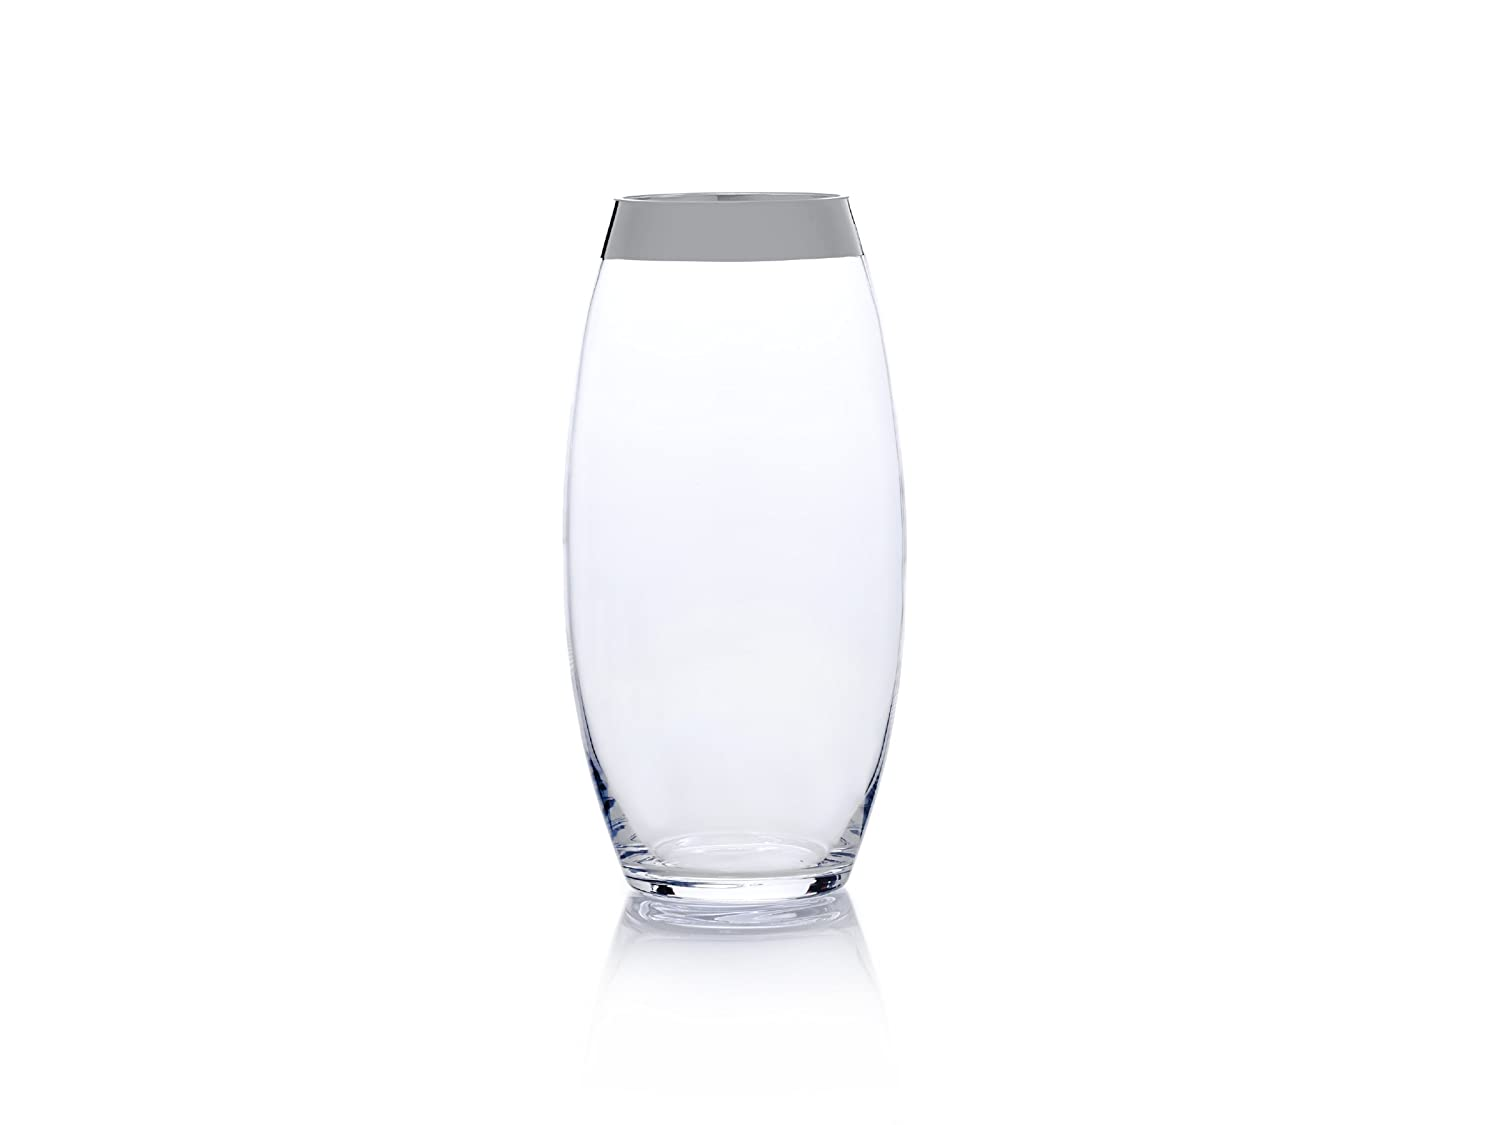 Mikasa Serenity Platinum 13.75-Inch Teardrop Glass Vase Lifetime Brands 5152818